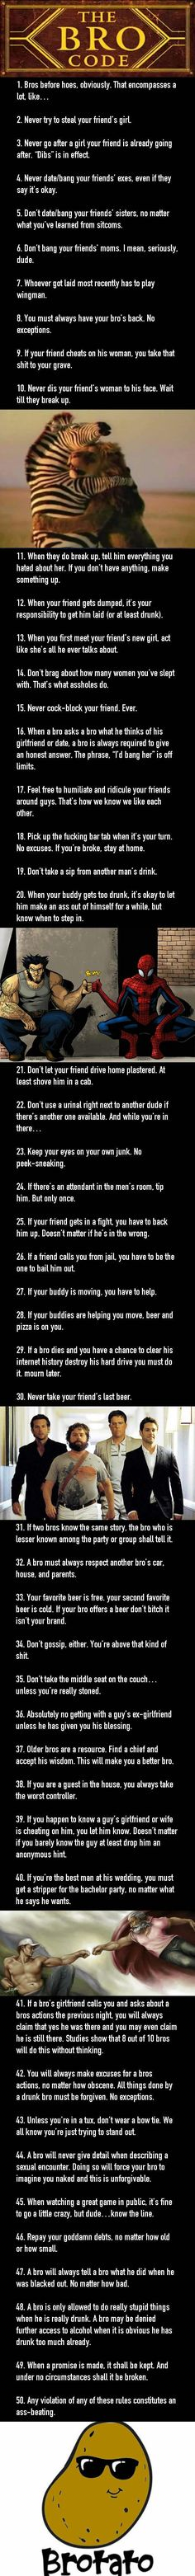 The Bro code - 9GAG